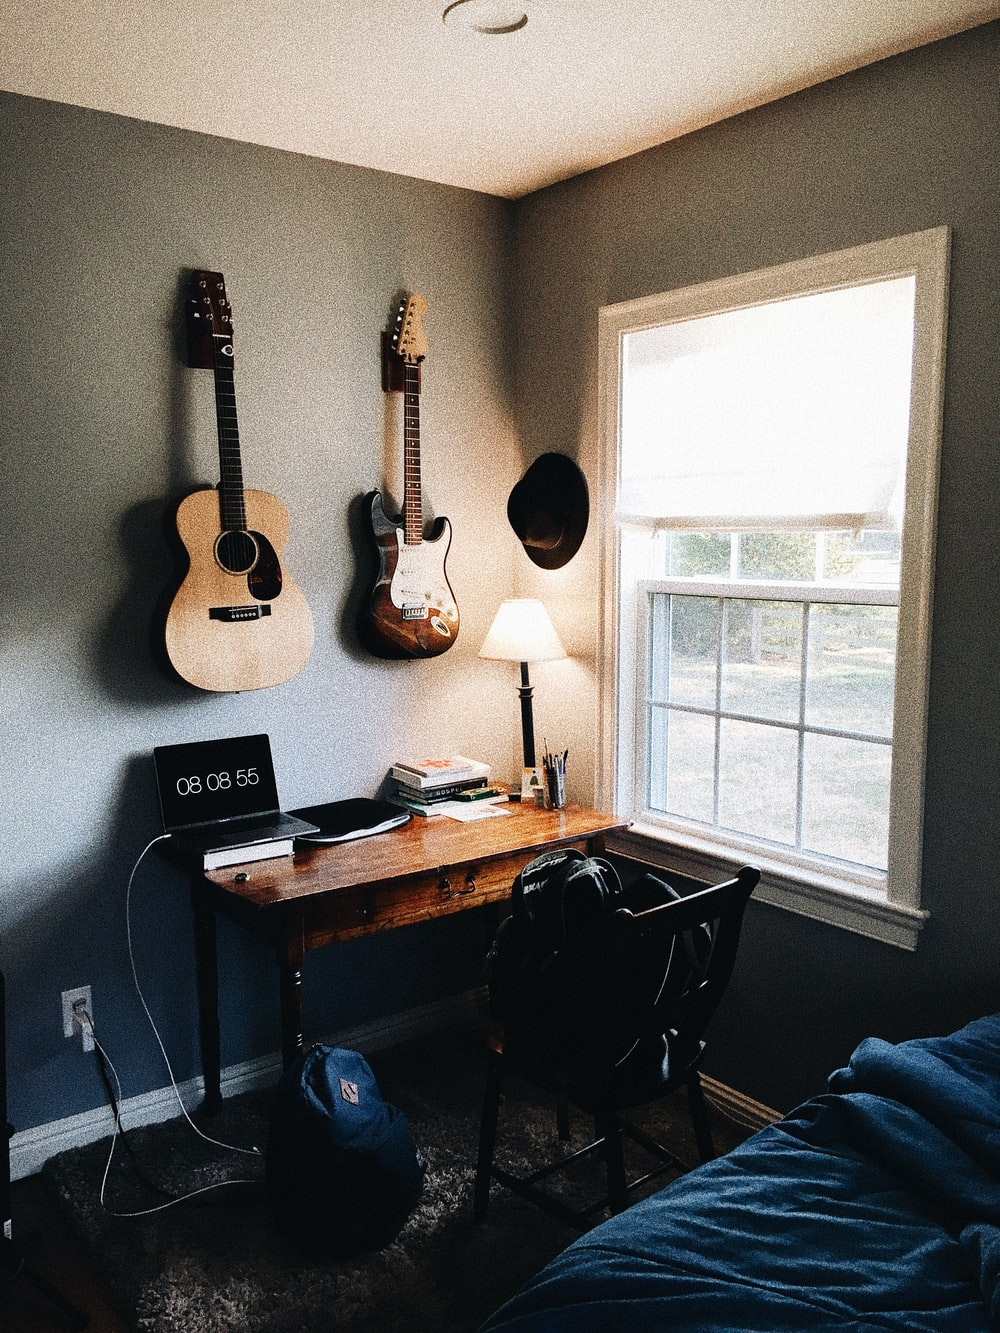 brown acoustic guitar near brown and black electric guitar hanging on wall